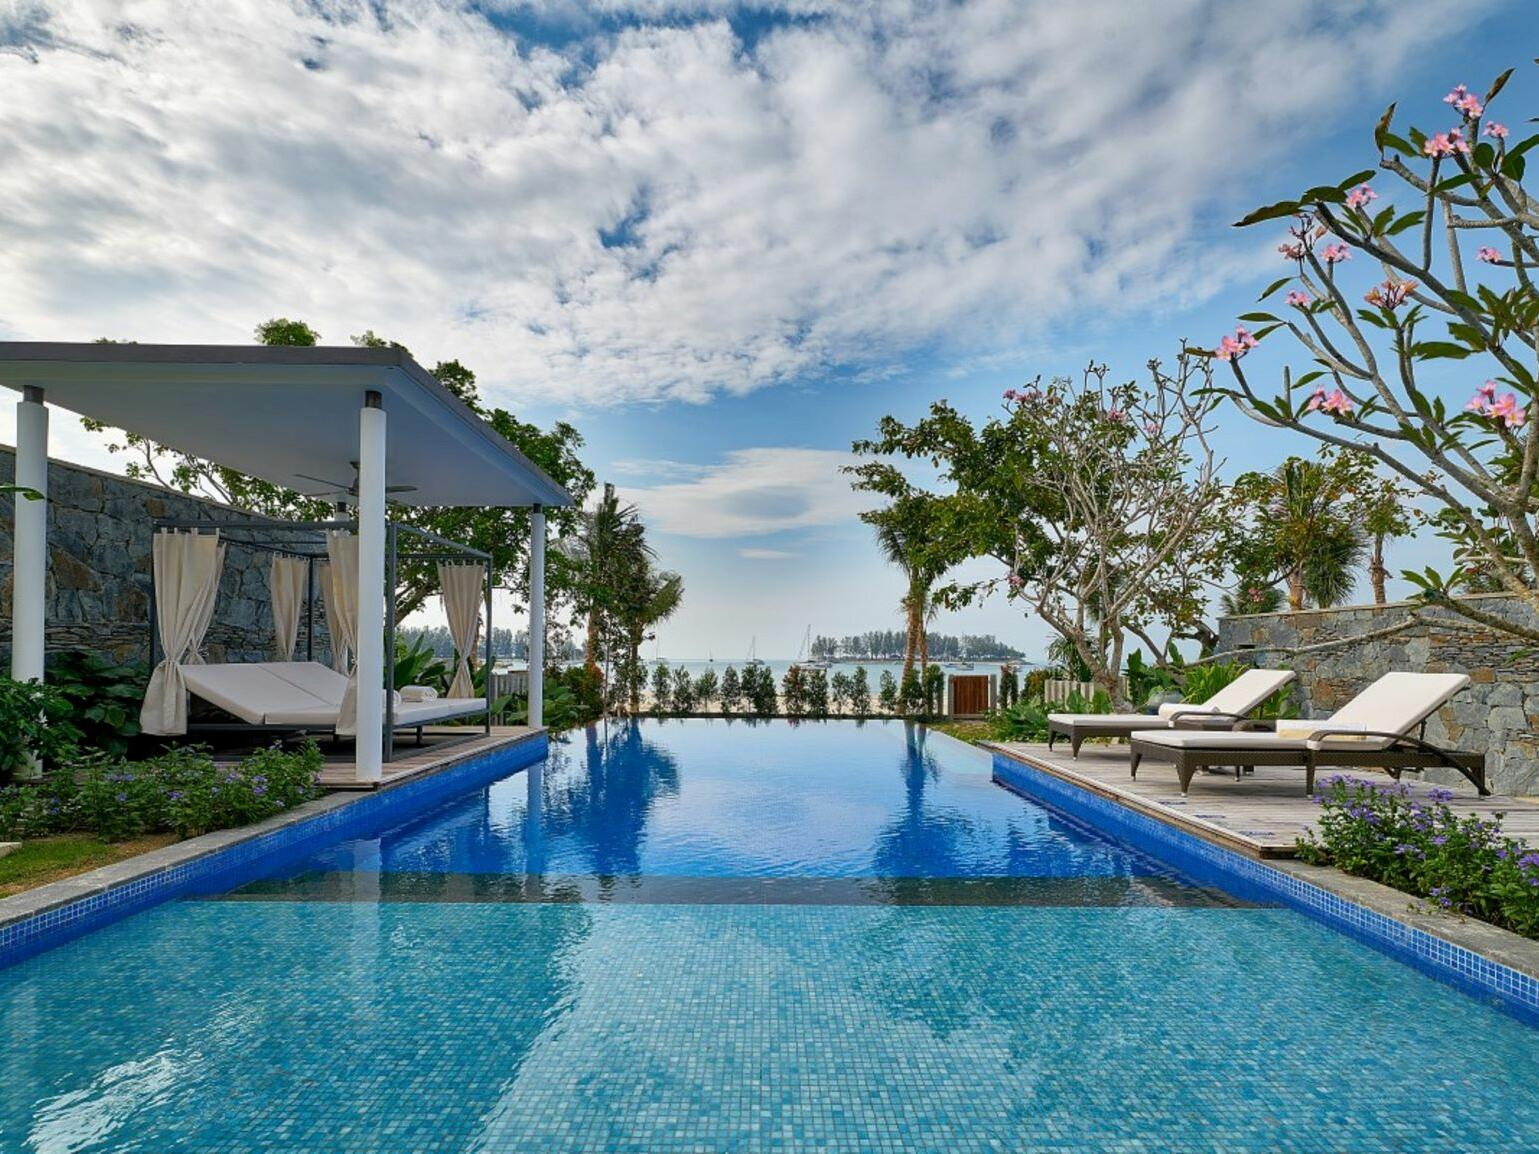 Swimming pool with sunbeds at The Danna Langkawi